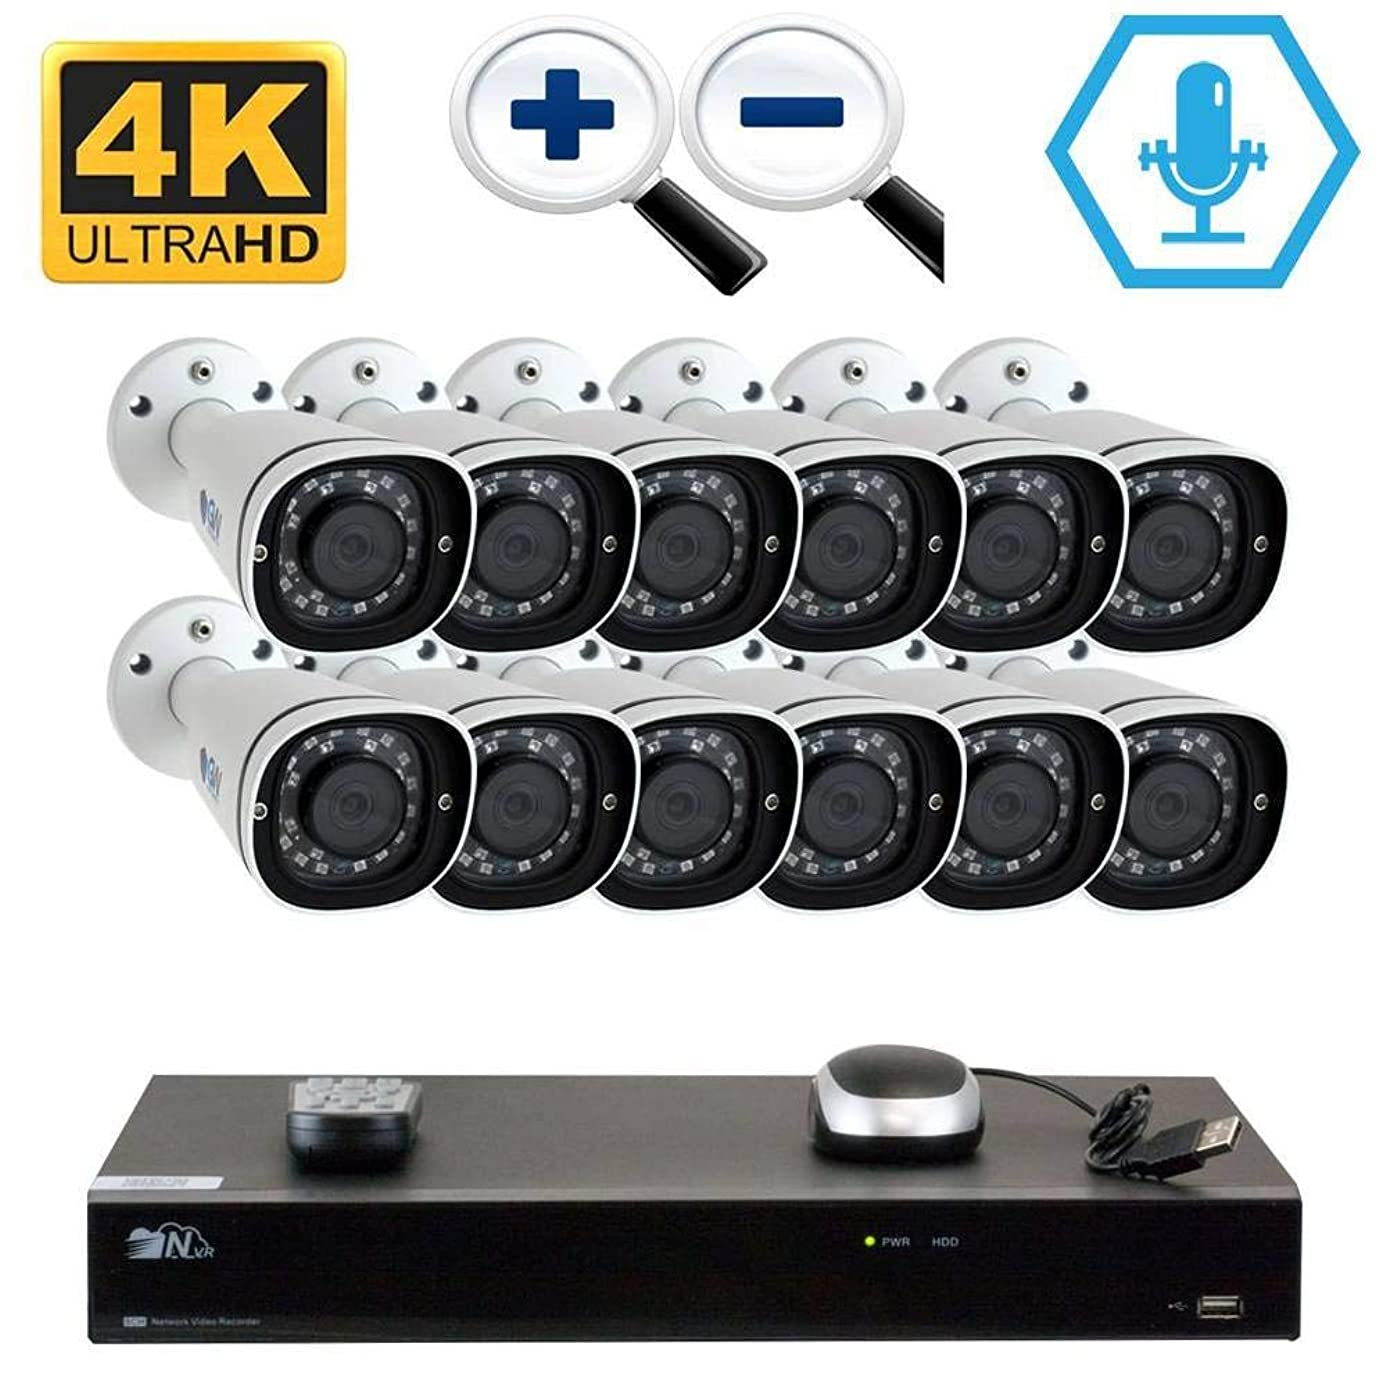 GW 16CH H.265 PoE NVR Ultra-HD 4K (3840x2160) Video & Audio Security Camera System with 12 x 4K (8MP) Microphone 3X Motorized Zoom IP Bullet Camera, 100ft Night Vision, 8TB HDD